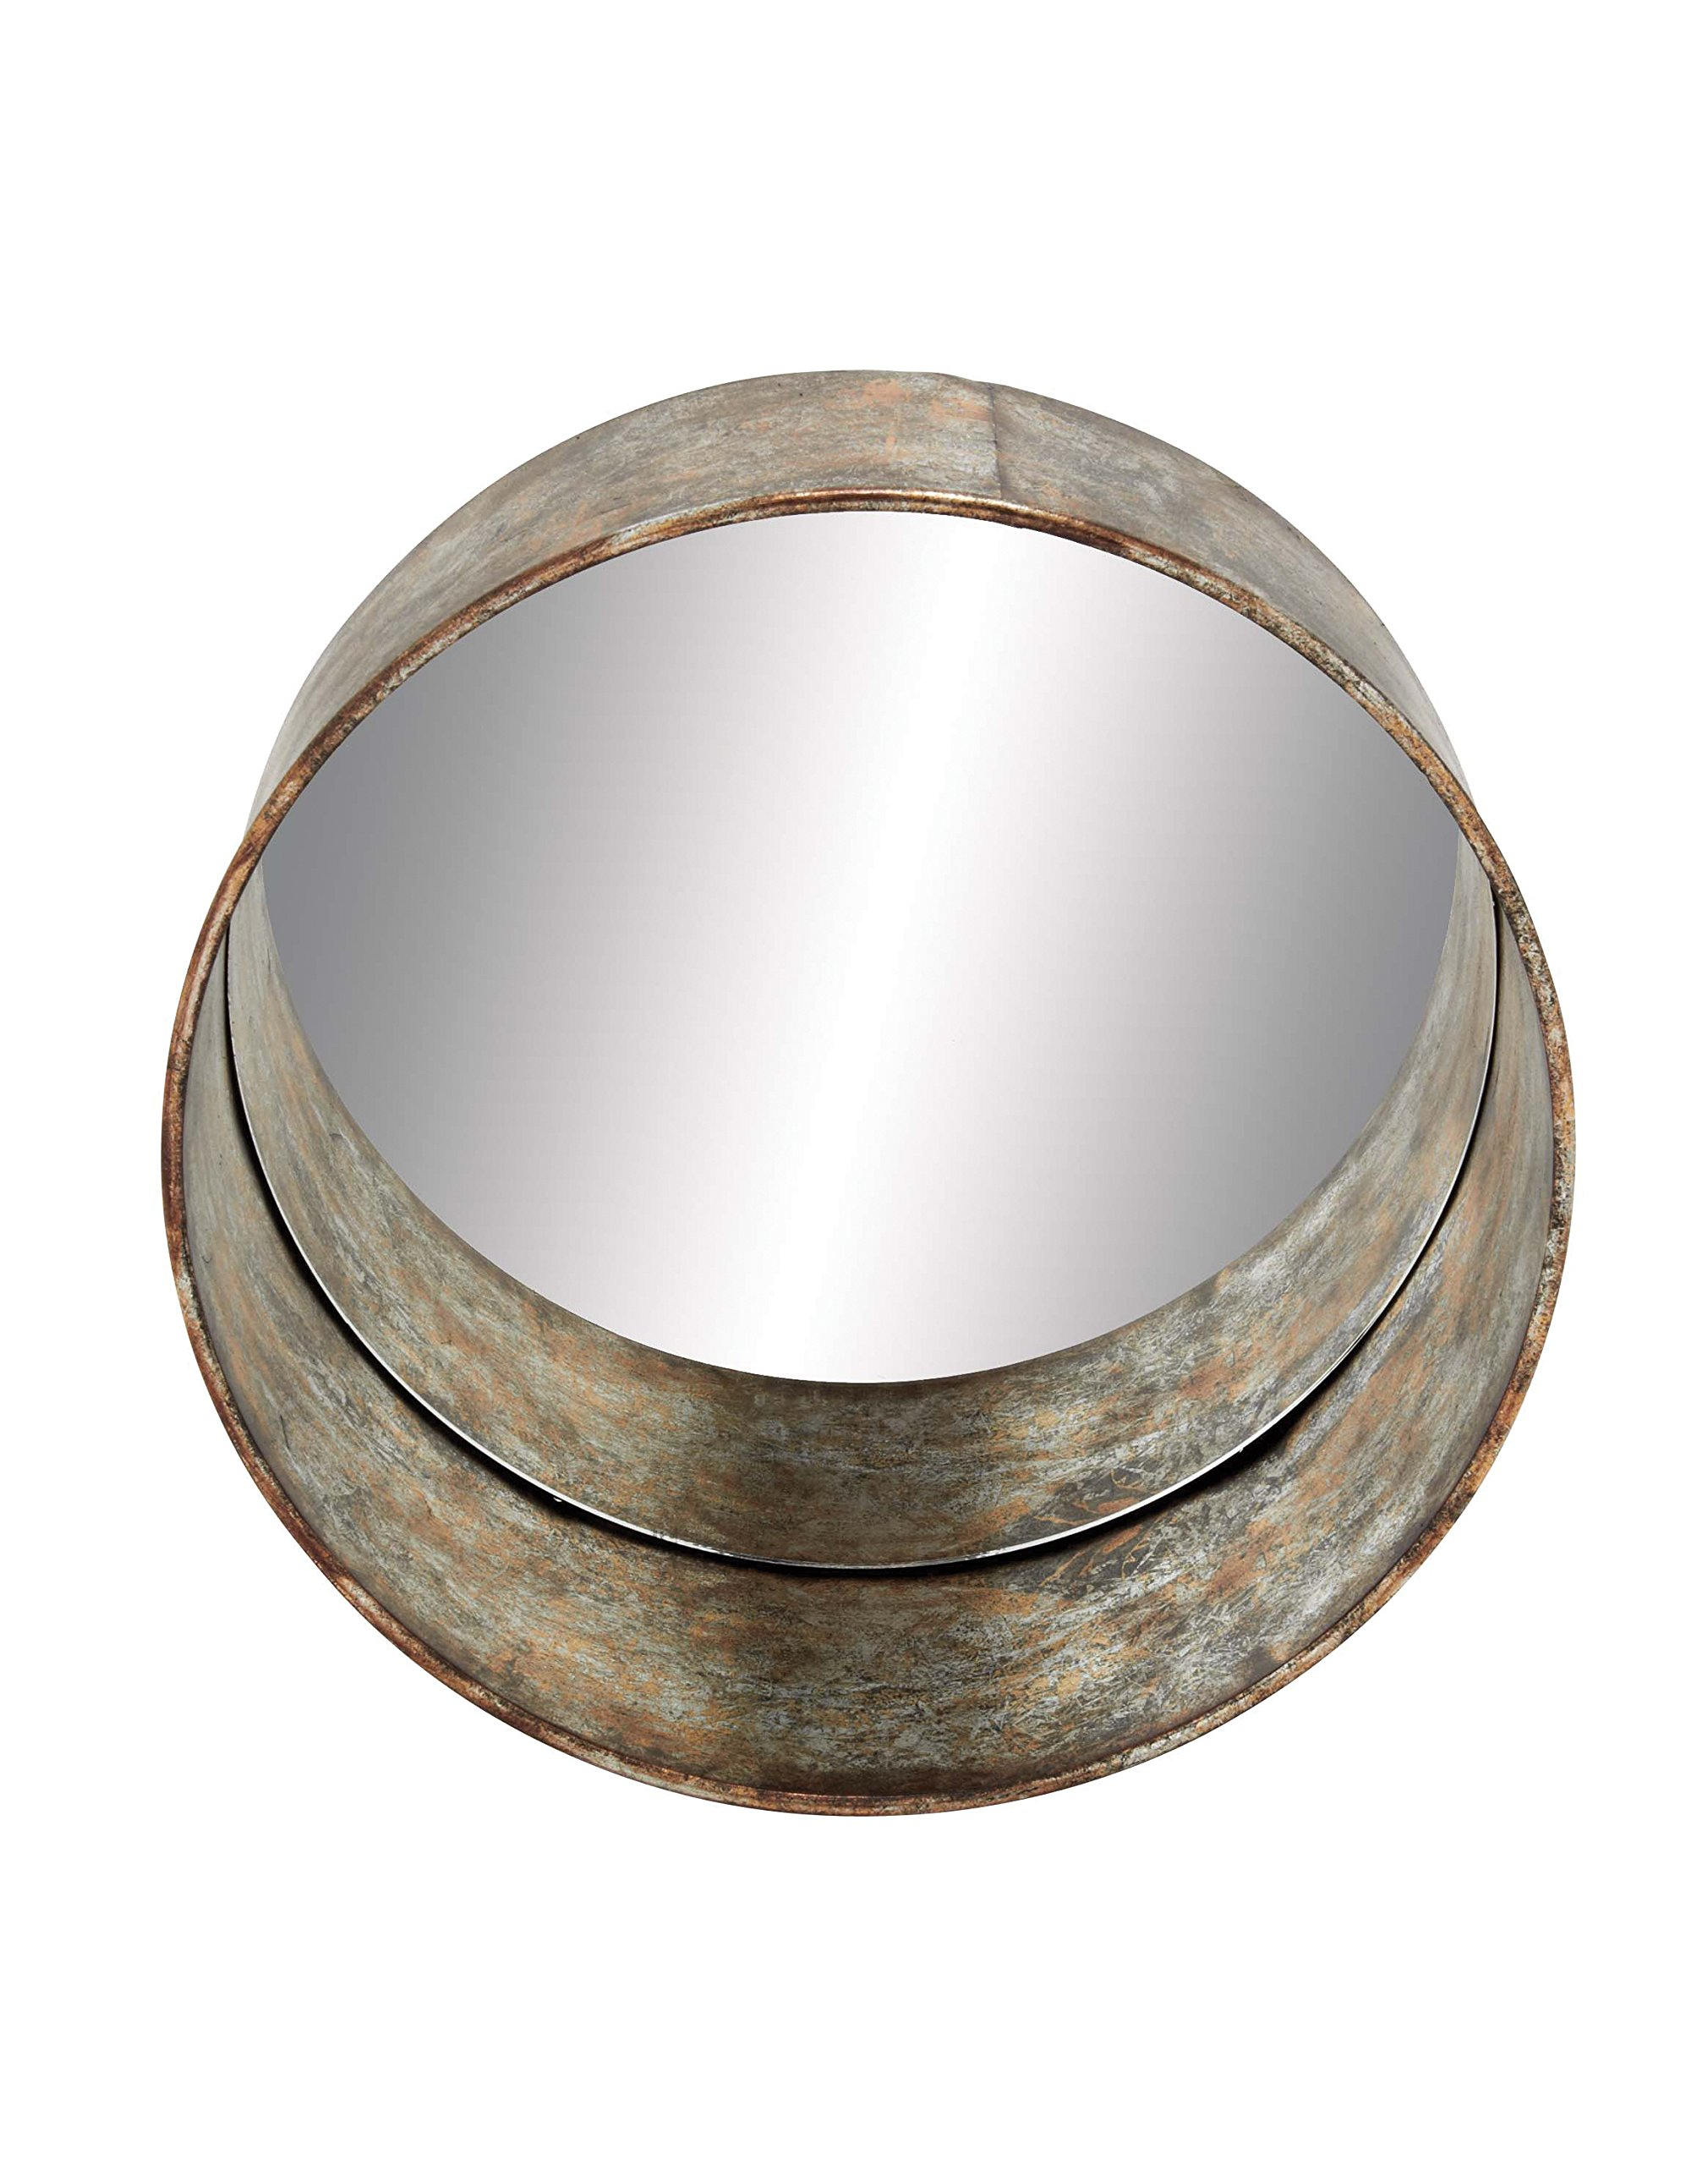 Deco 79 54448 Metal Wall Mirror - Item color: rust, silver Item finish: textured, distressed This product is Made in China - bathroom-mirrors, bathroom-accessories, bathroom - 815BMSMVohL -